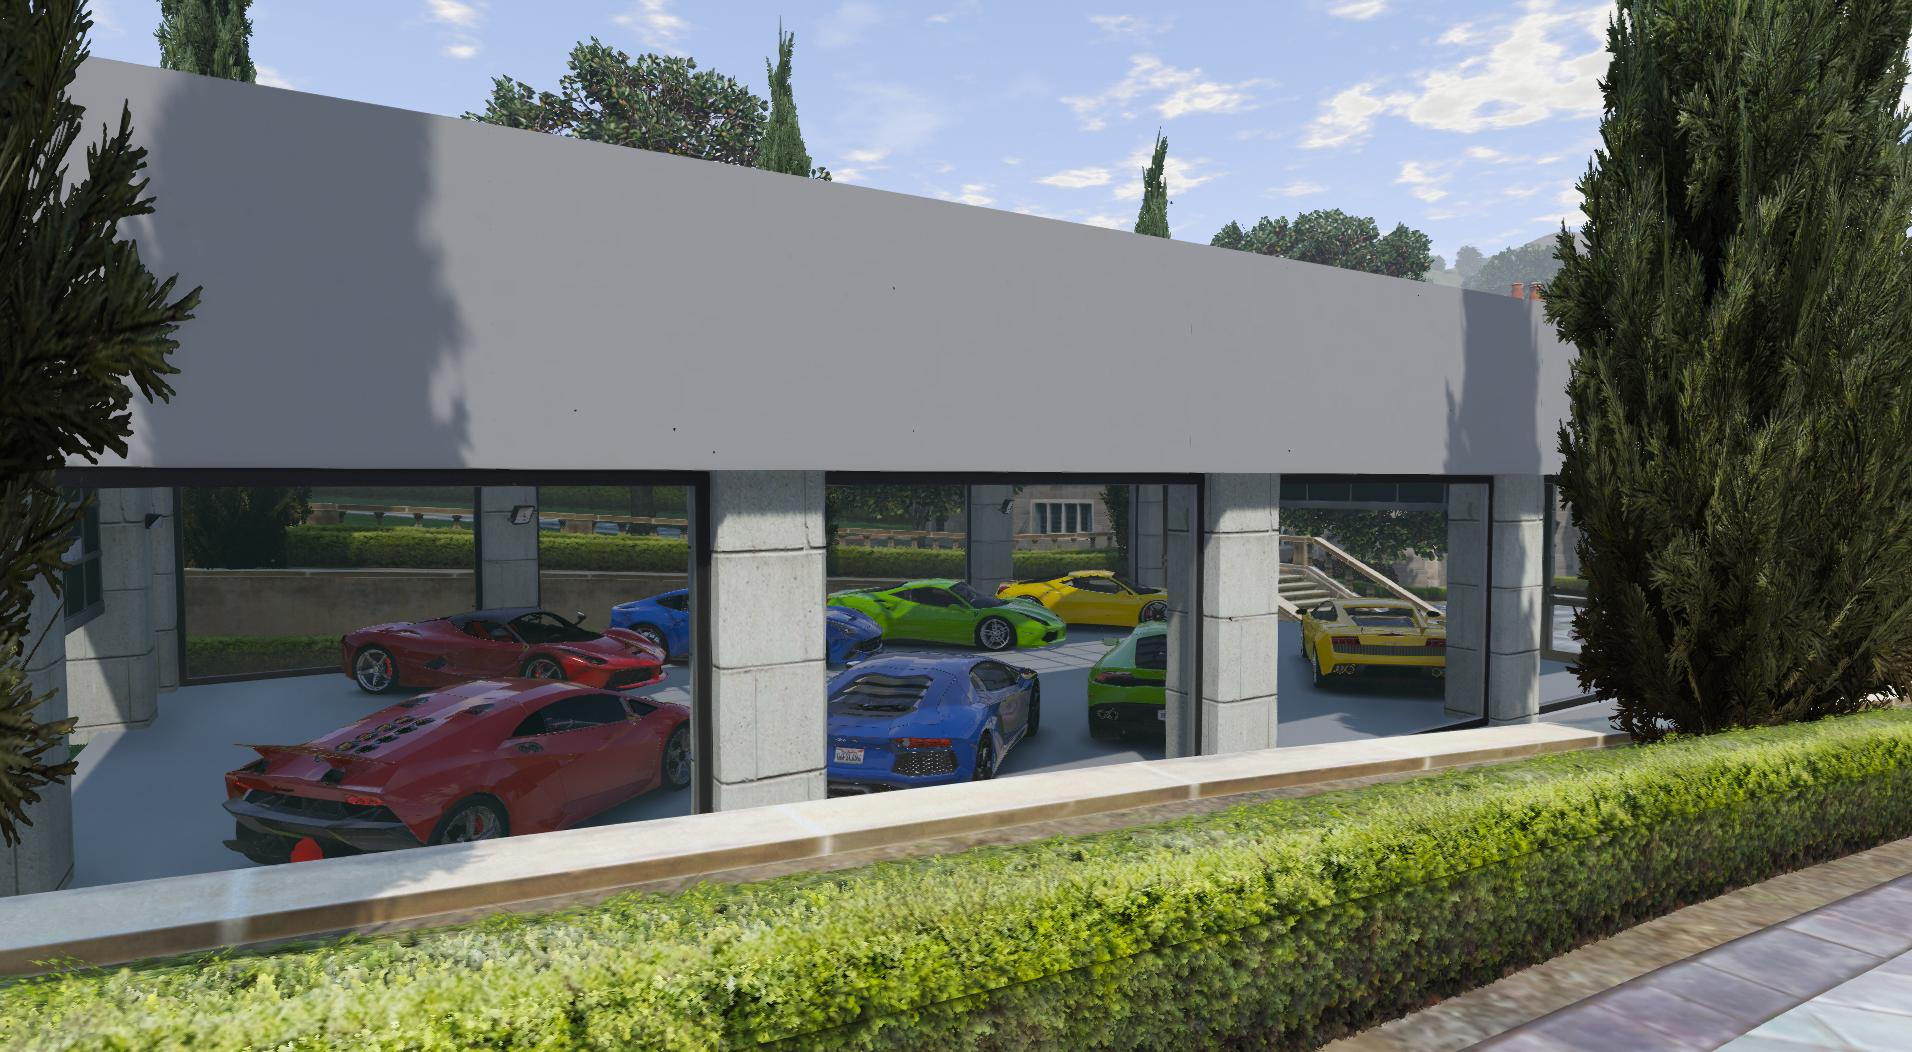 8 car garage showroom gta5 for 5 car garage